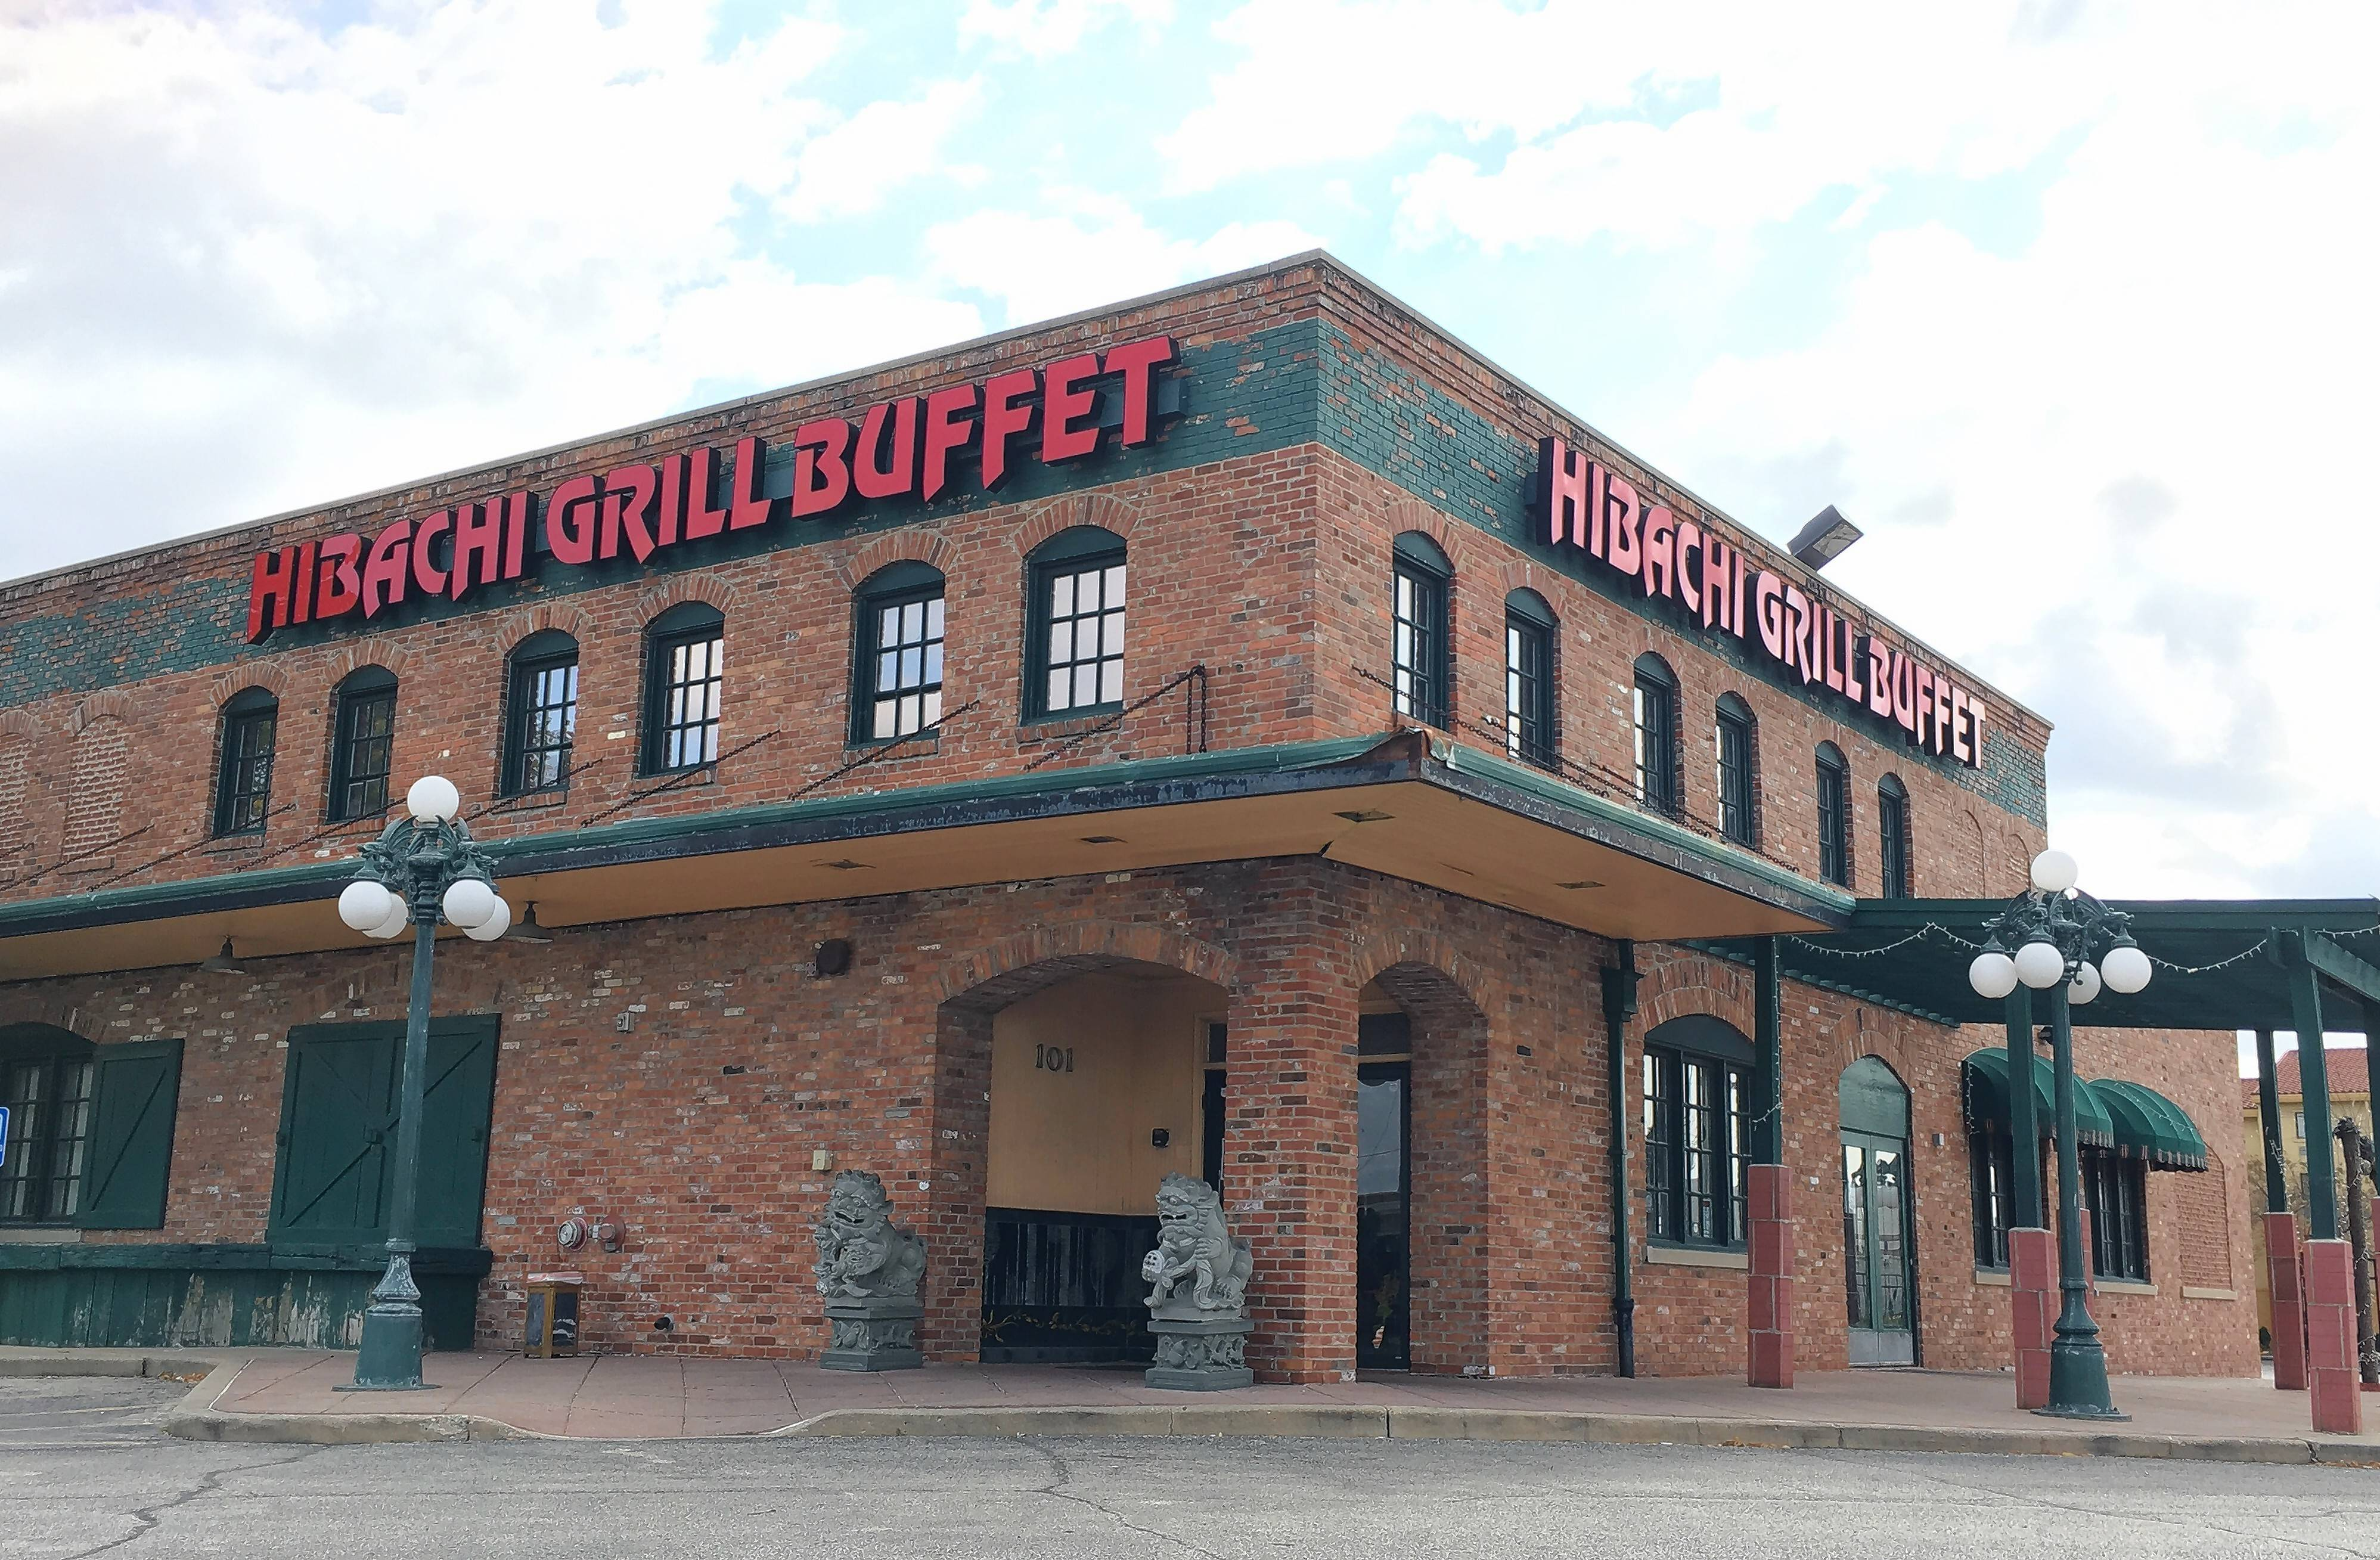 Hibachi Grill Buffet, 101 Busse Road in Elk Grove Village, will pay $100,000 to resolve a lawsuit filed by the Illinois attorney general's office alleging the restaurant profited by targeting Latinos for underpaid positions.